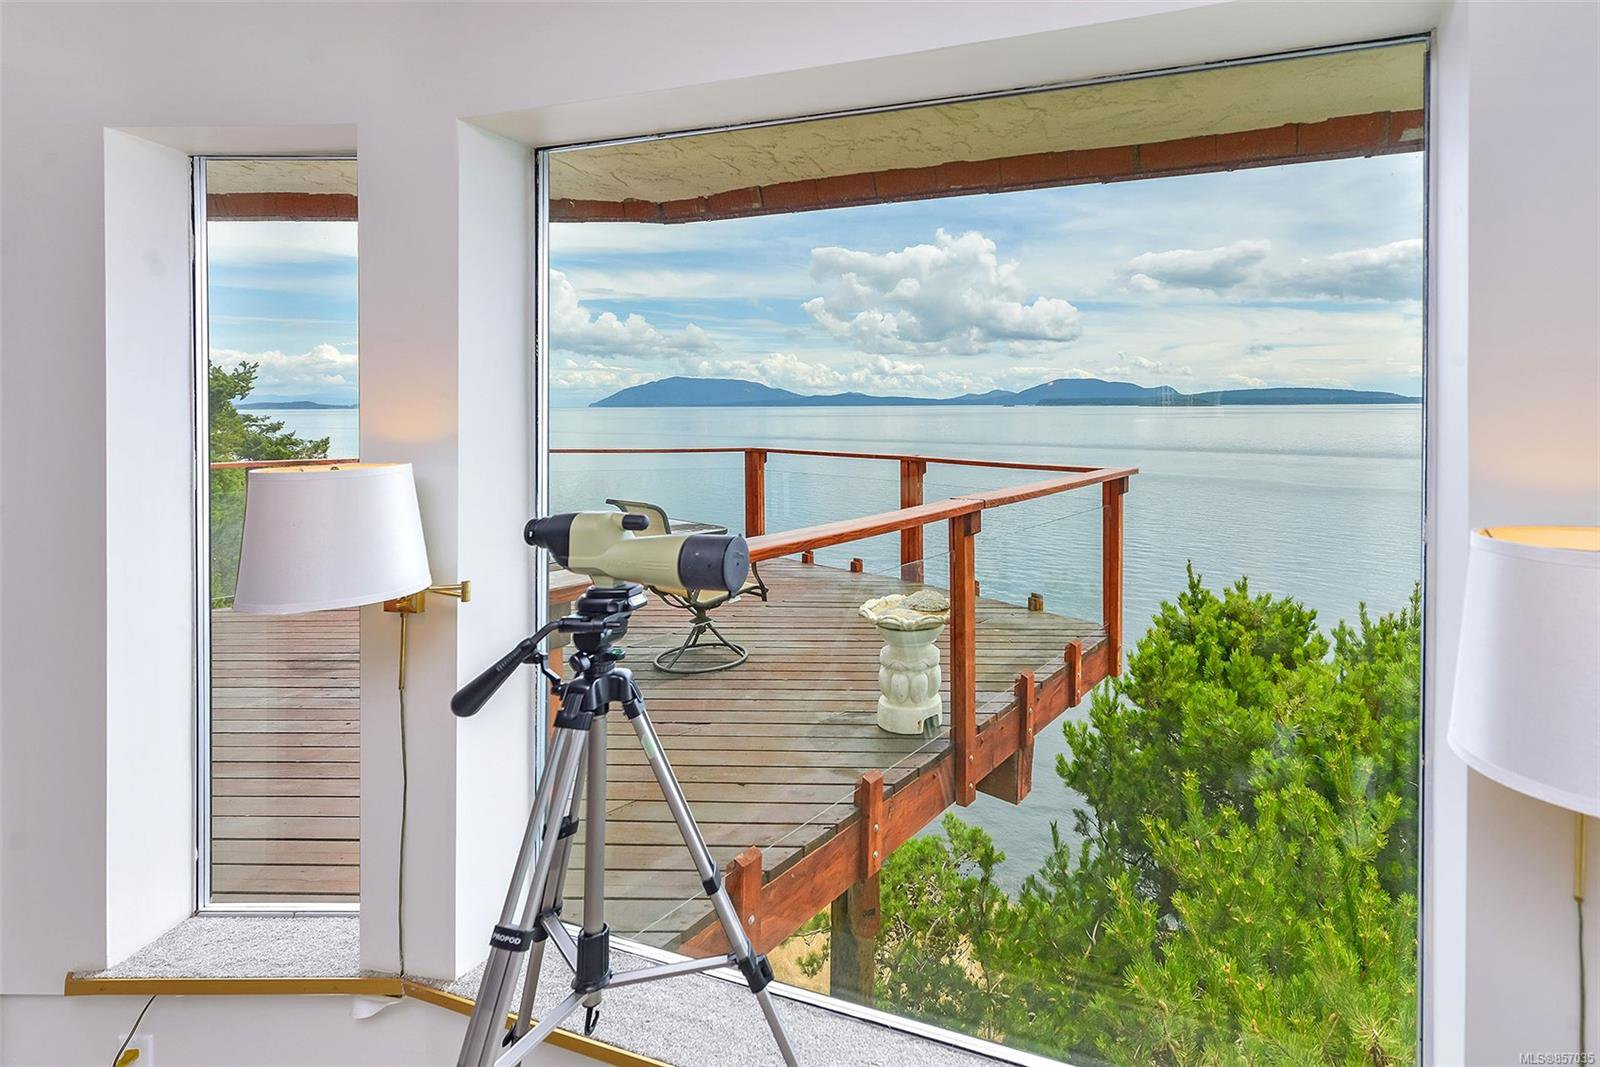 Photo 13: Photos: 172 Cliffside Rd in : GI Saturna Island House for sale (Gulf Islands)  : MLS®# 857035